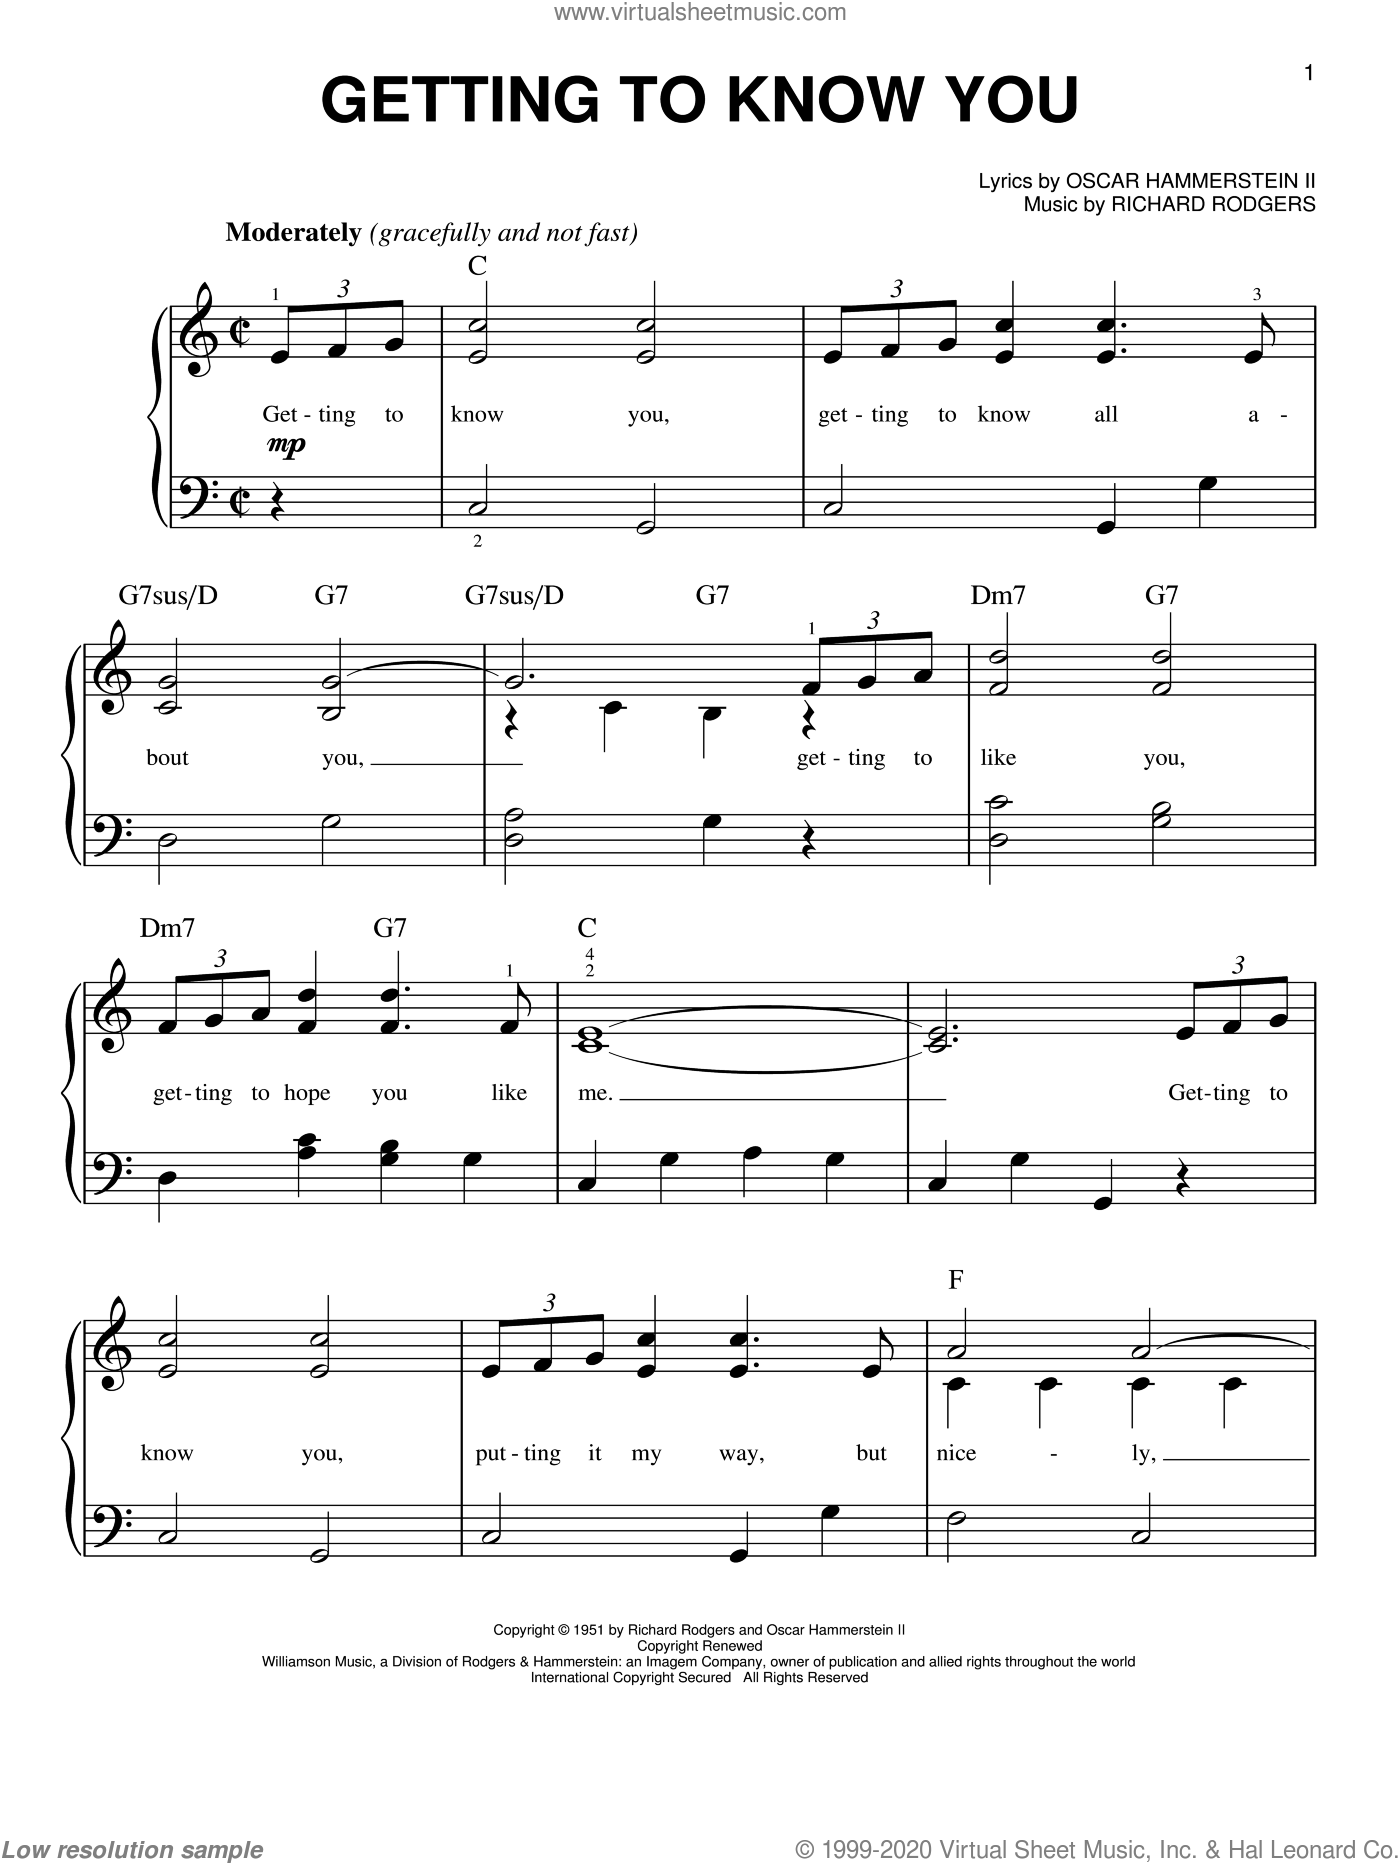 Getting To Know You sheet music for piano solo by Rodgers & Hammerstein, Oscar II Hammerstein and Richard Rodgers, easy. Score Image Preview.